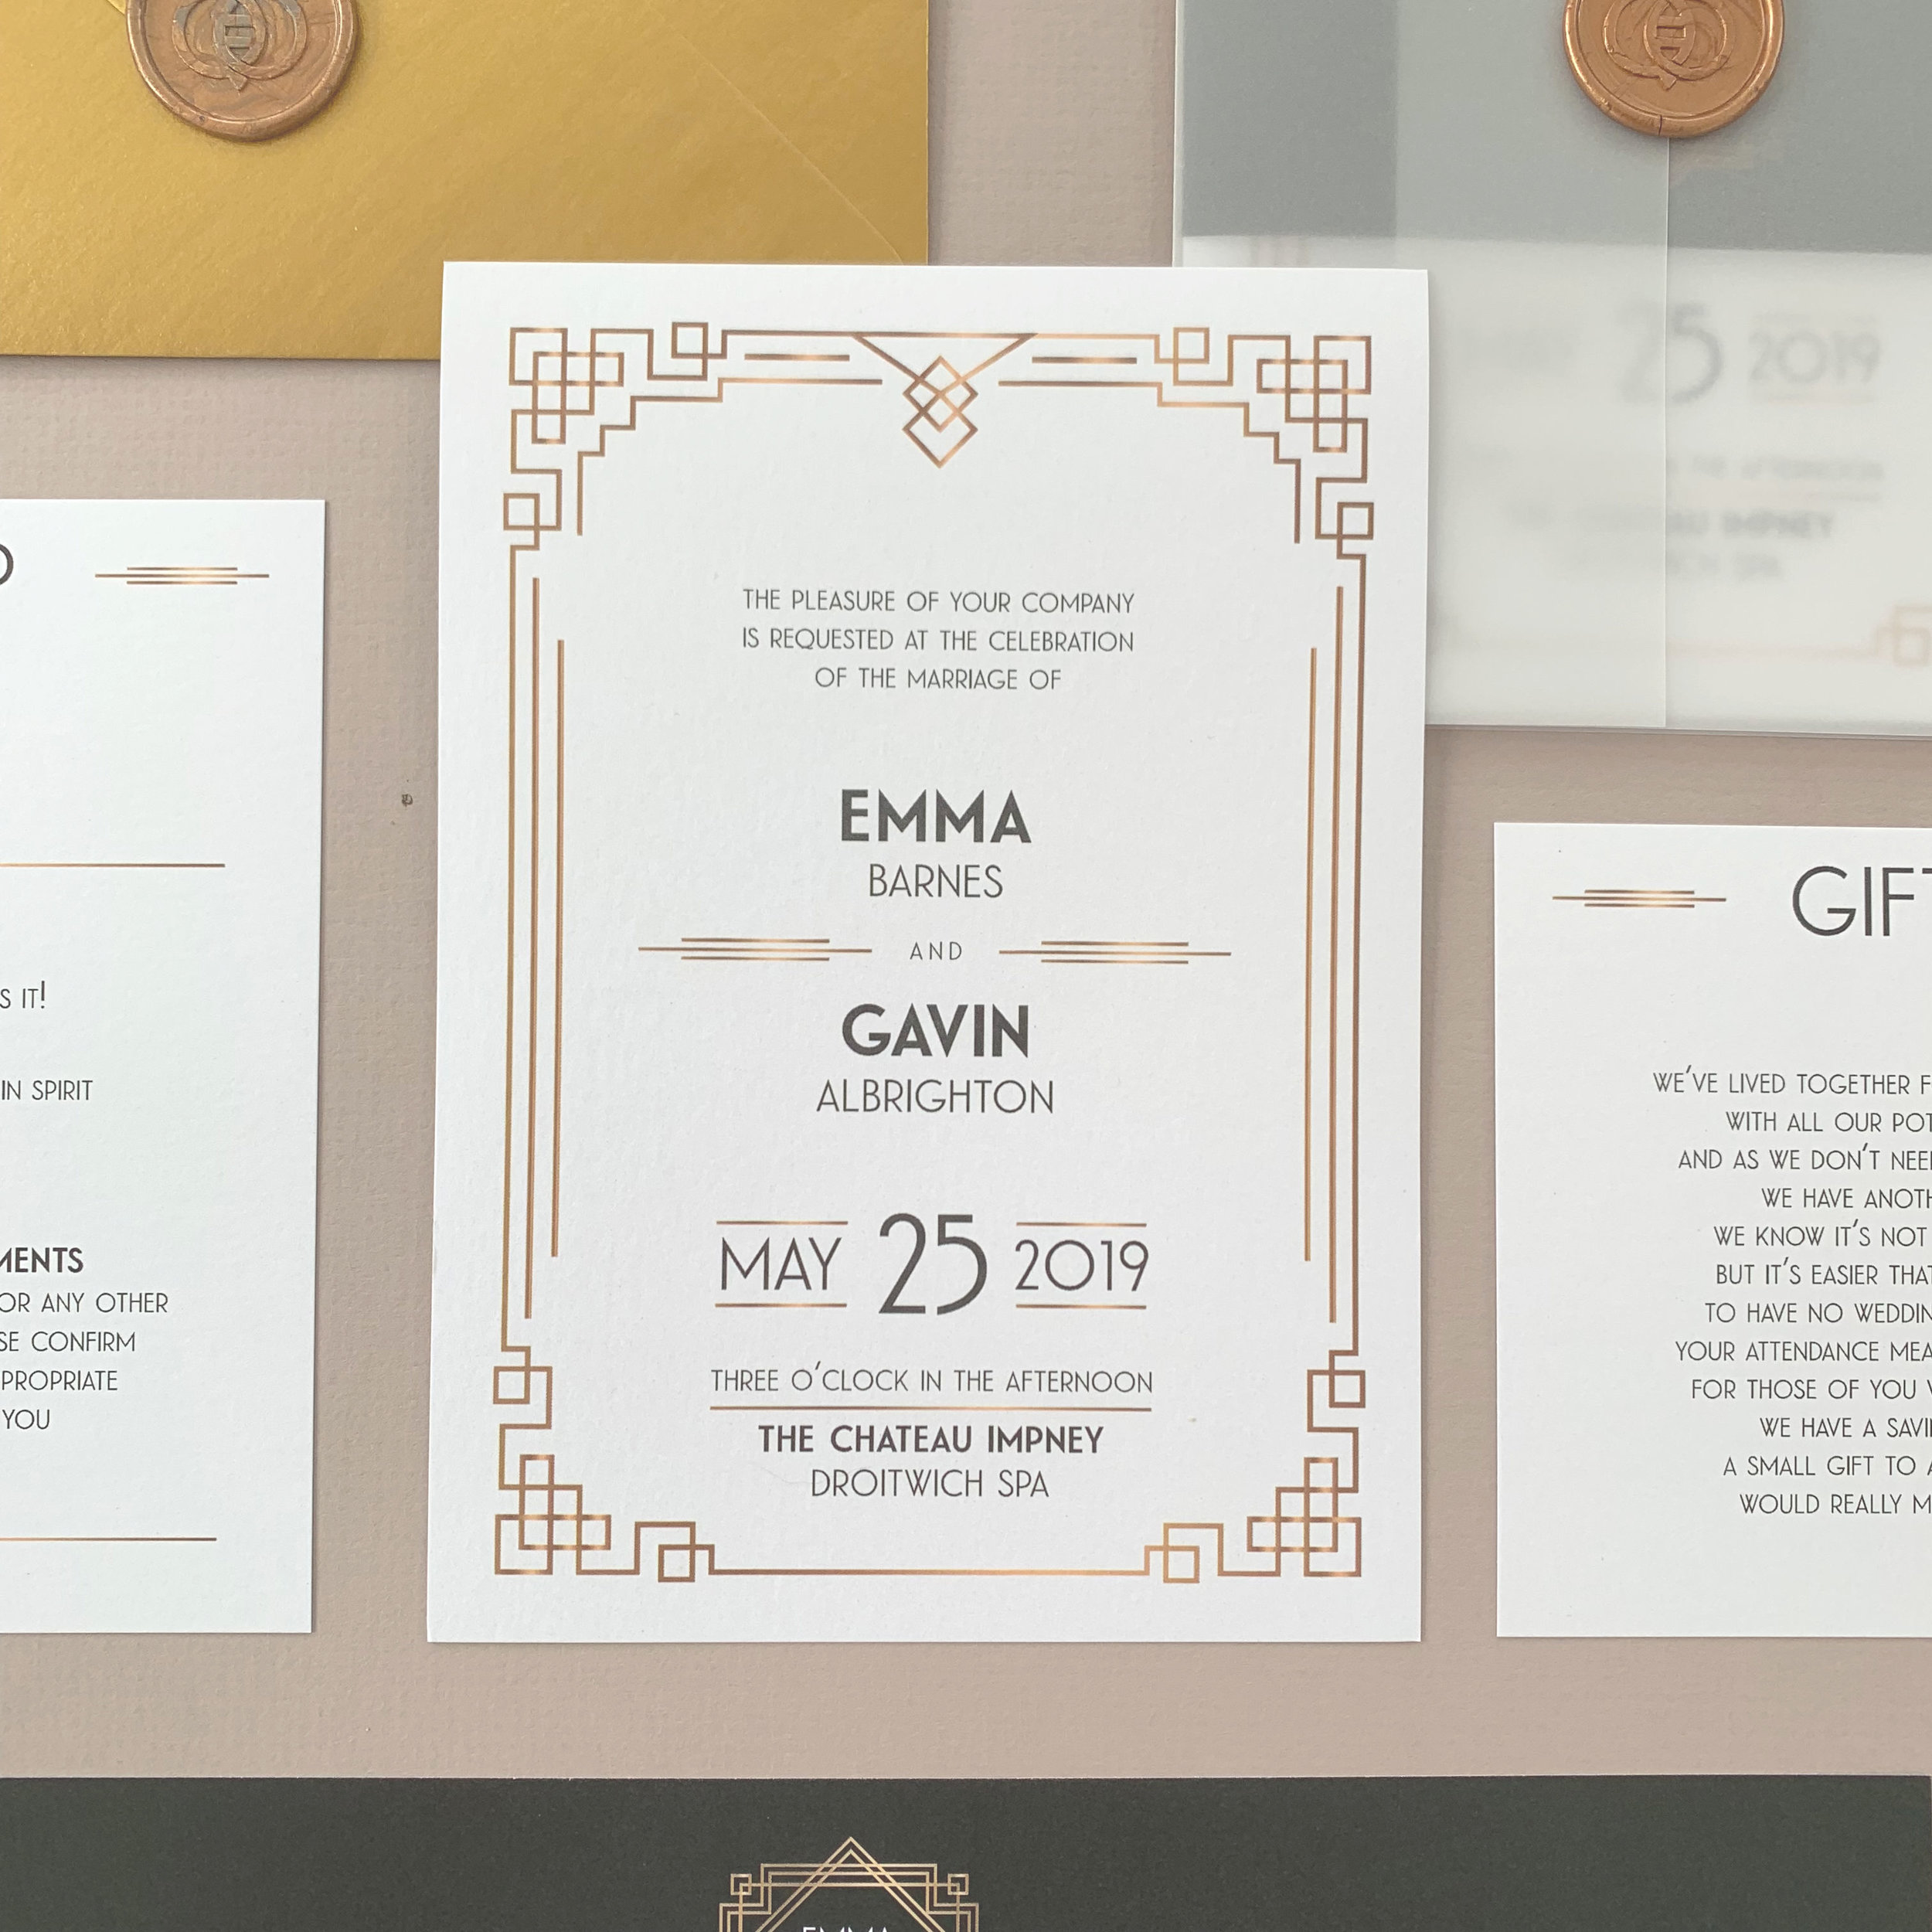 Pricing - CardsDay or Evening Invitation Card with Envelope @ £1.25RSVP Card with Envelope @ £0.50Information Card @ £0.40 (Large), £0.30 (Small)—————————————————————Finishing OptionsPaper Belly Band @ £0.65Vellum Jacket @ £0.40Wax Seal or Personalised Foiled Sticker @ £0.85—————————————————————UpgradesColoured Envelope Upgrade @ £0.20Engraving of monogram wax stamp @ £45.00Guest Name Printing @ £0.25RSVP Envelope Addressing @ £0.20Invitation Envelope Addressing @ £0.50Assembly Service @ £25.00 per order